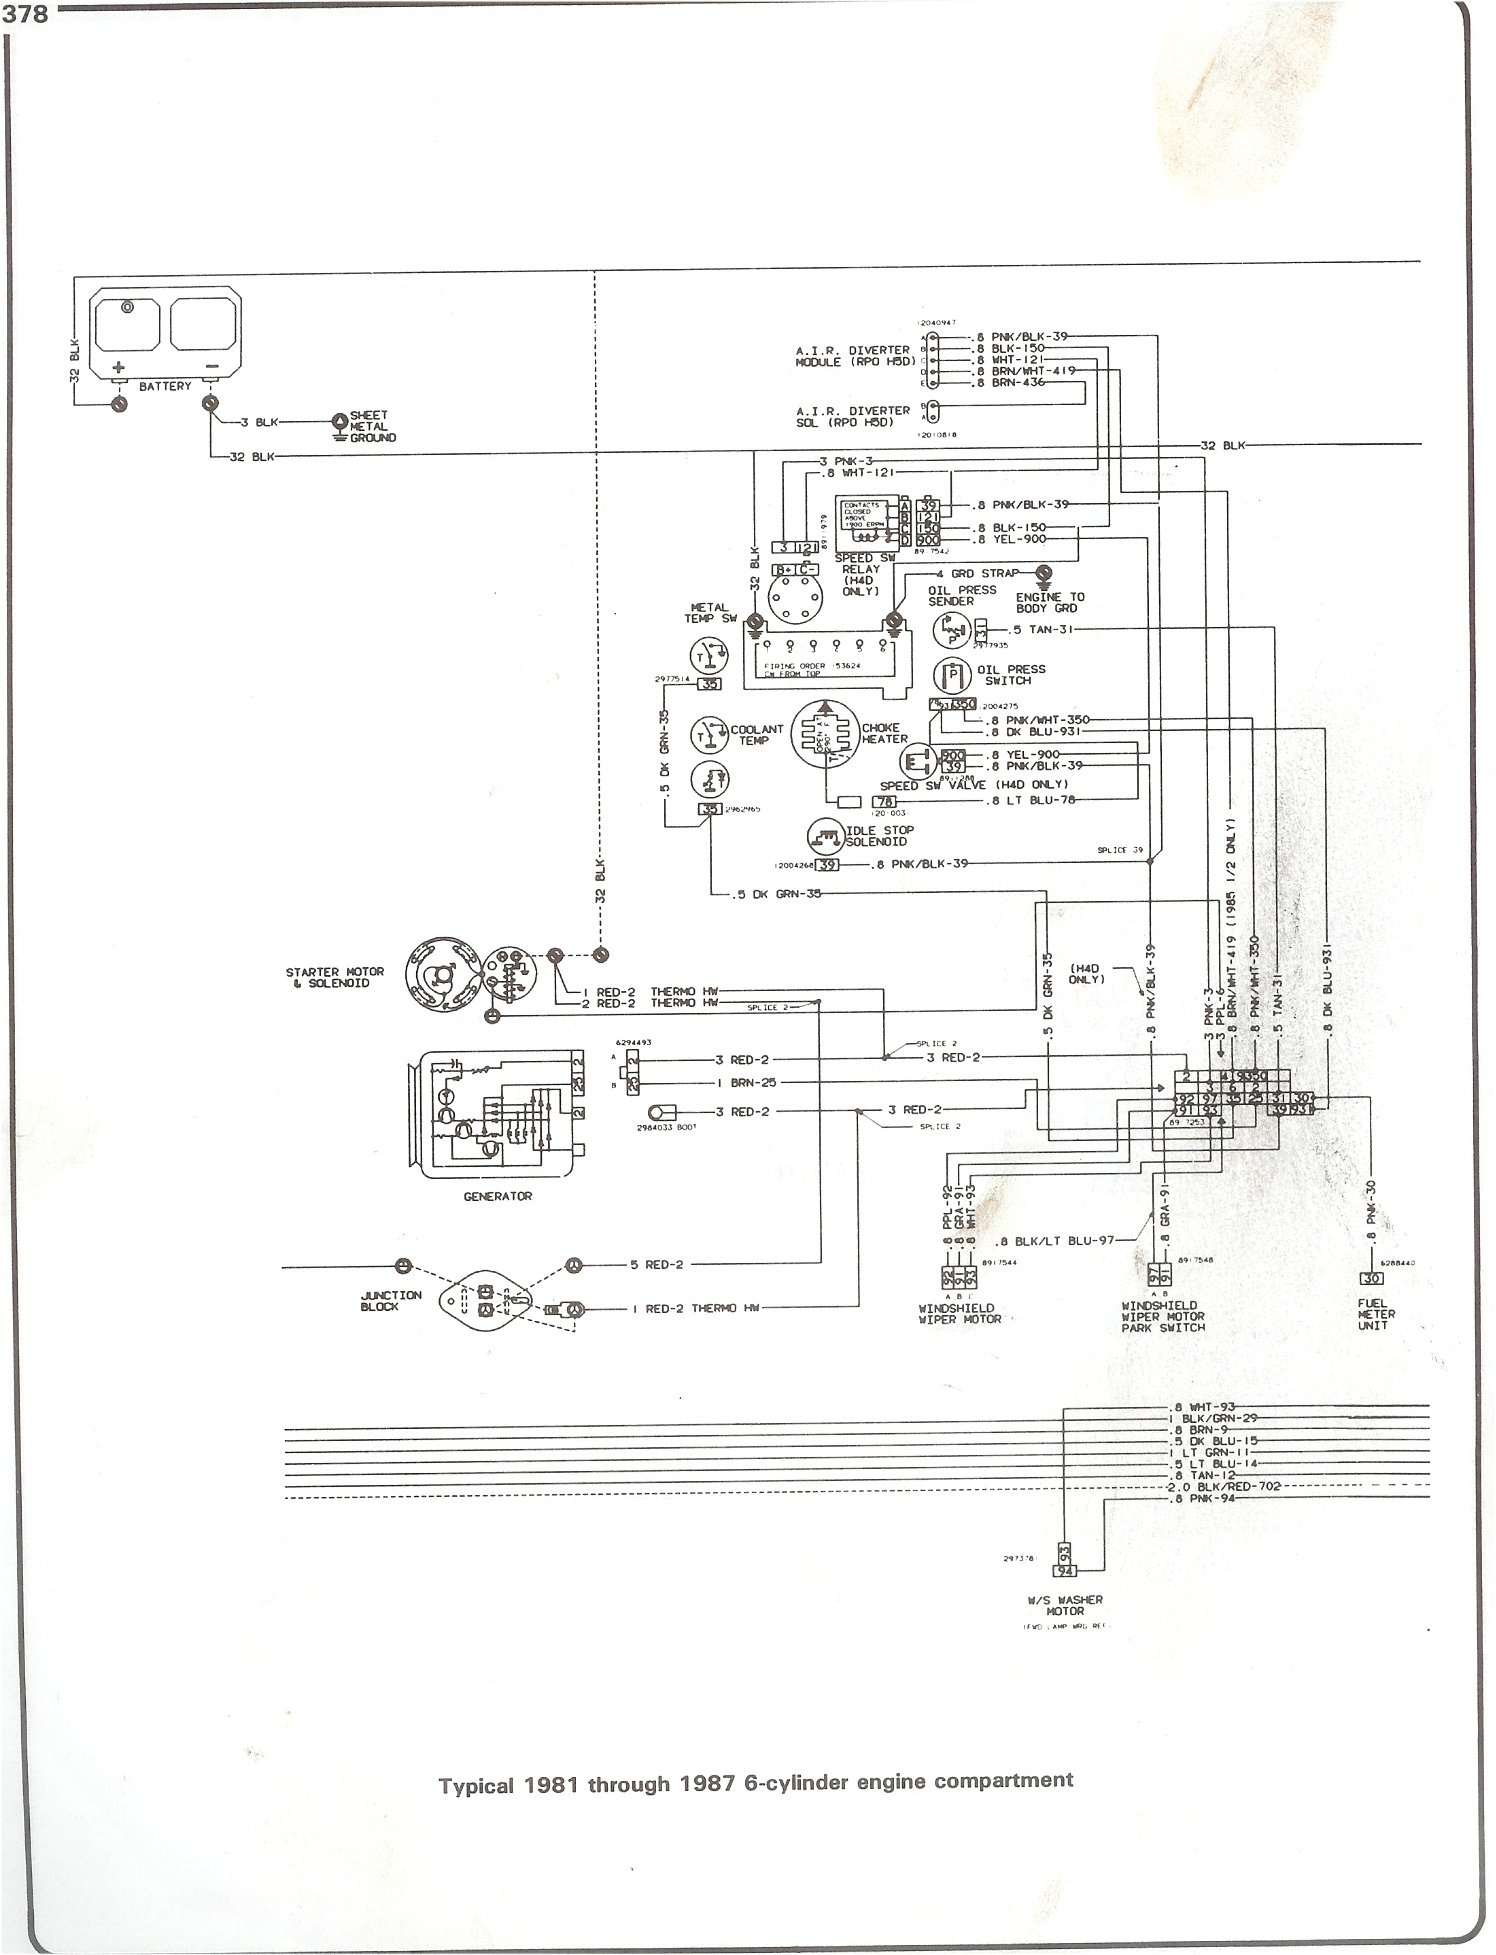 1980 Chevy Heater Wiring Another Blog About Diagram 76 Jeep Cj7 Fuse Box Complete 73 87 Diagrams Rh Forum 87chevytrucks Com